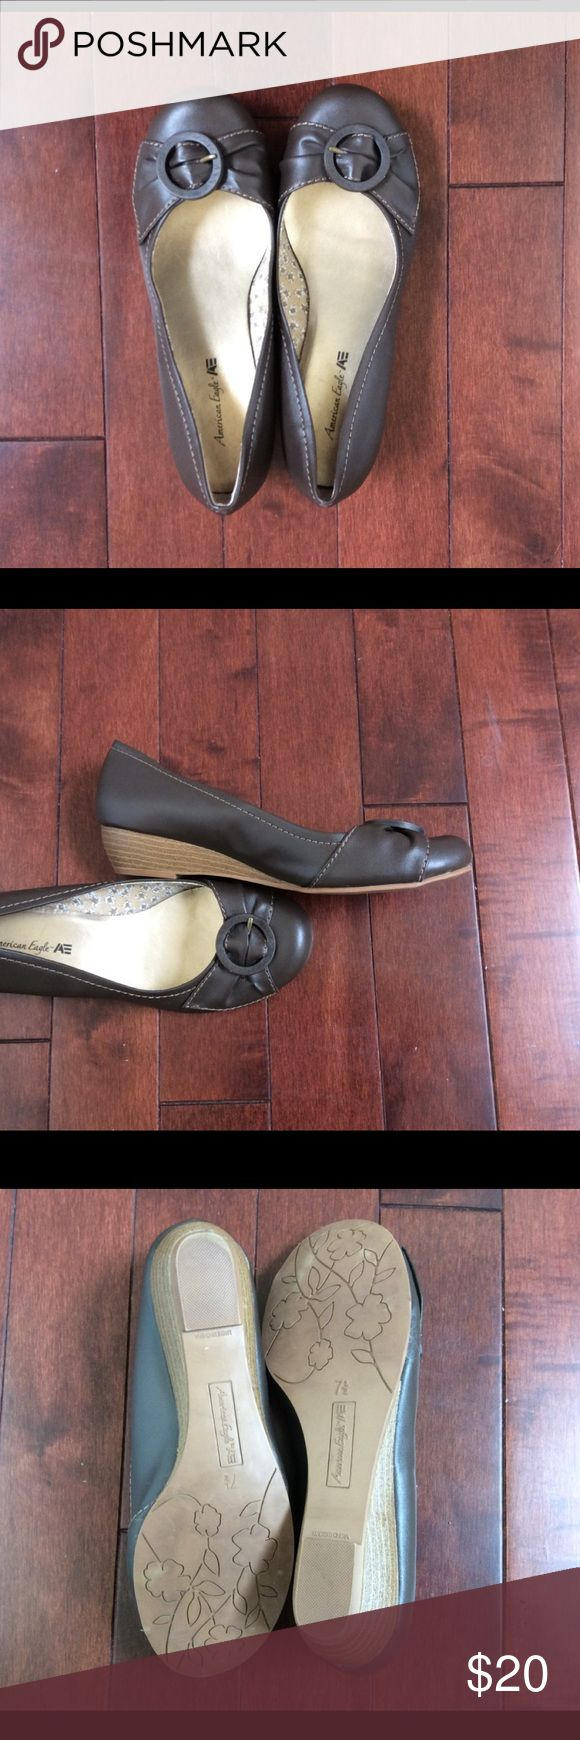 American Eagle Brown Wedges Adorable brown low wedges from American Eagle in size 7.5.  Barely used at all!  Rounded toe with buckle detail.  1 inch wedge heel.  Perfect for a casual day at the office or to wear on a day out!  Comfortable and classically stylish :) American Eagle Outfitters Shoes Wedges